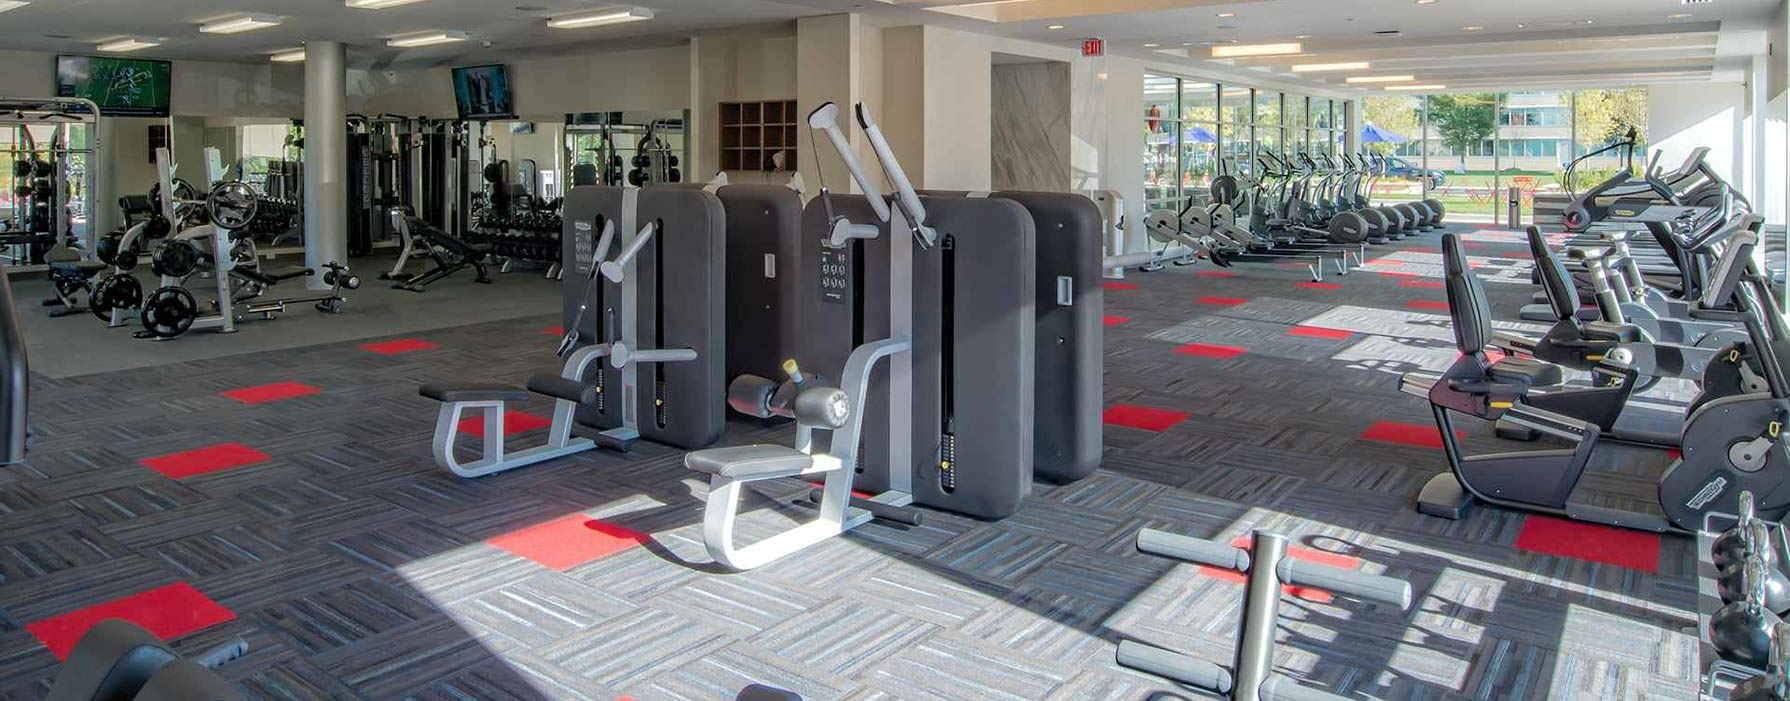 Park Towne Place Premier Apartment Homes - Philadelphia, PA - Fitness Center